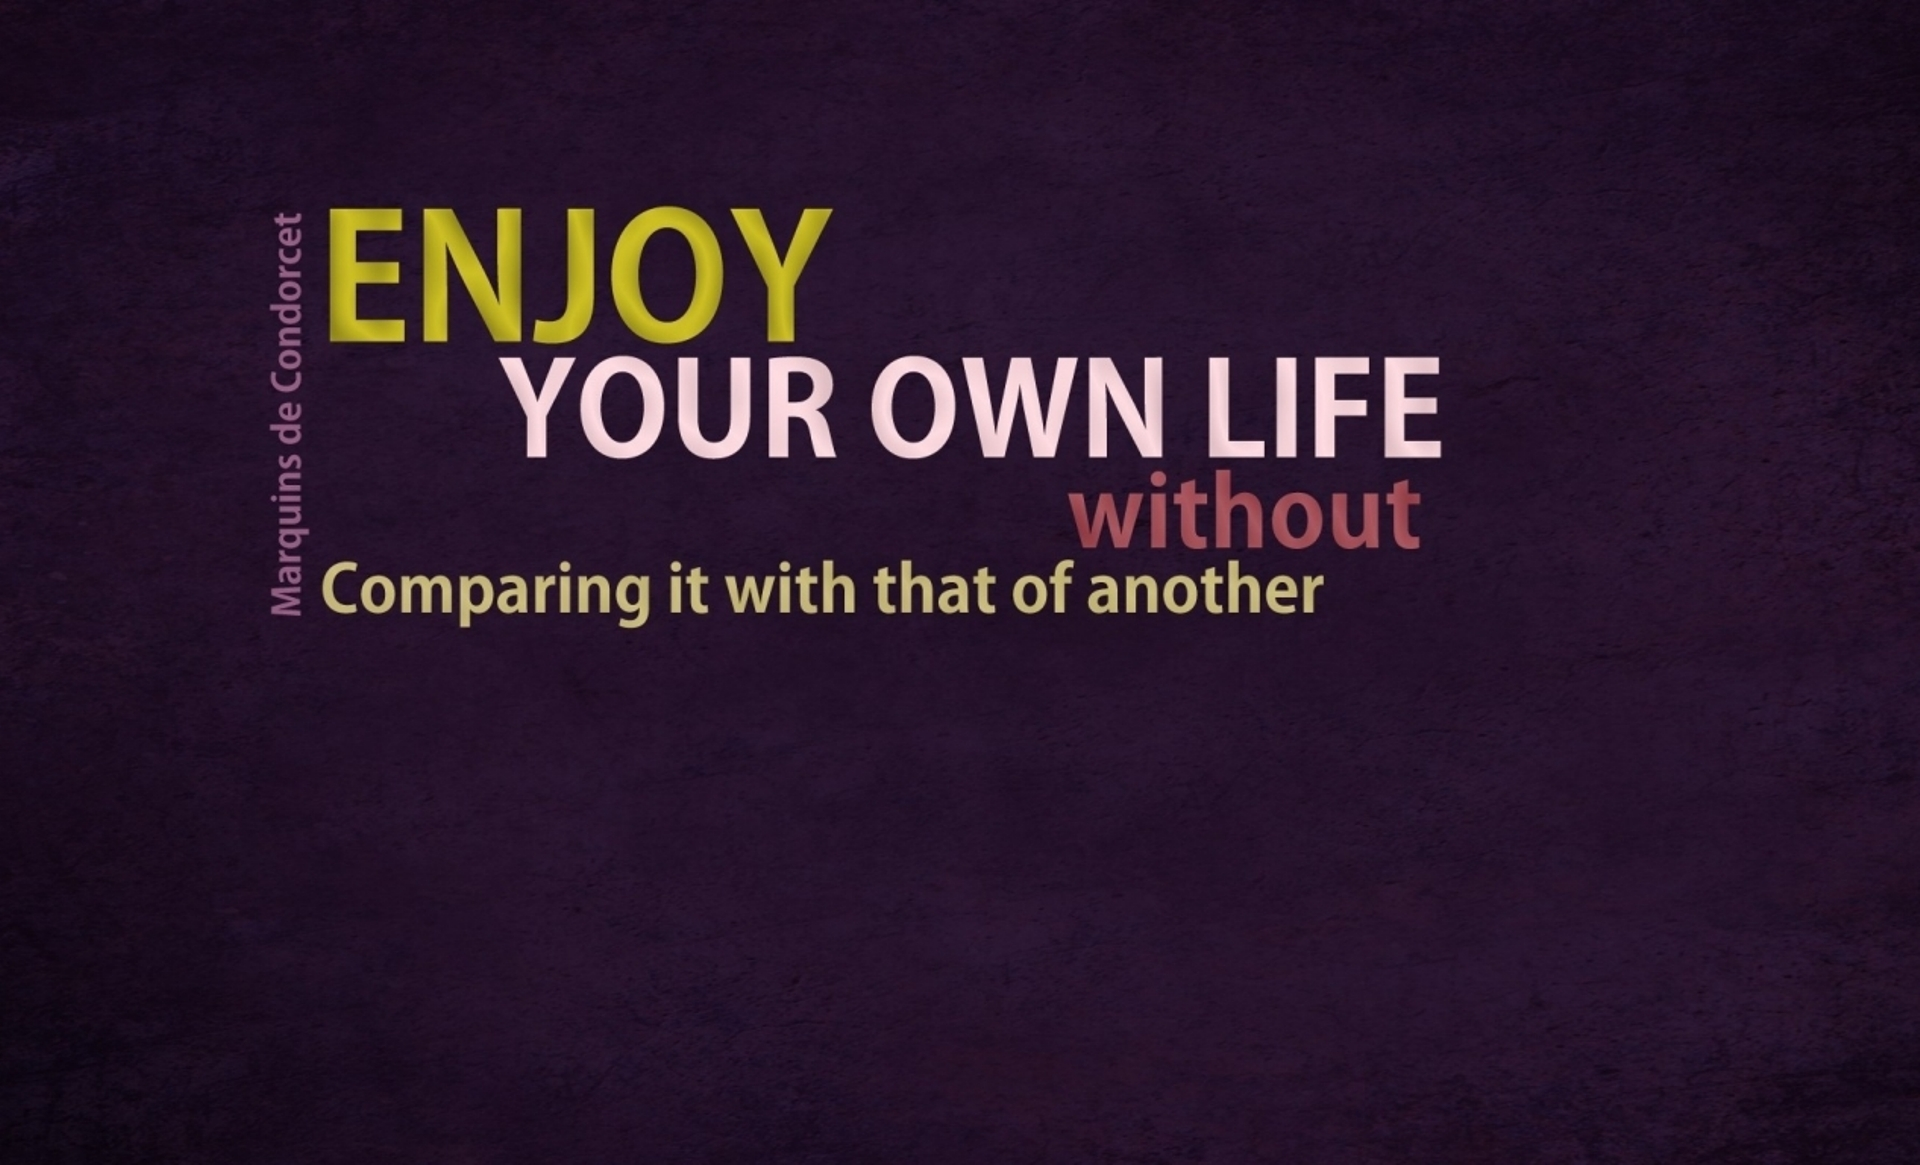 Wallpapers Of Quotations On Life